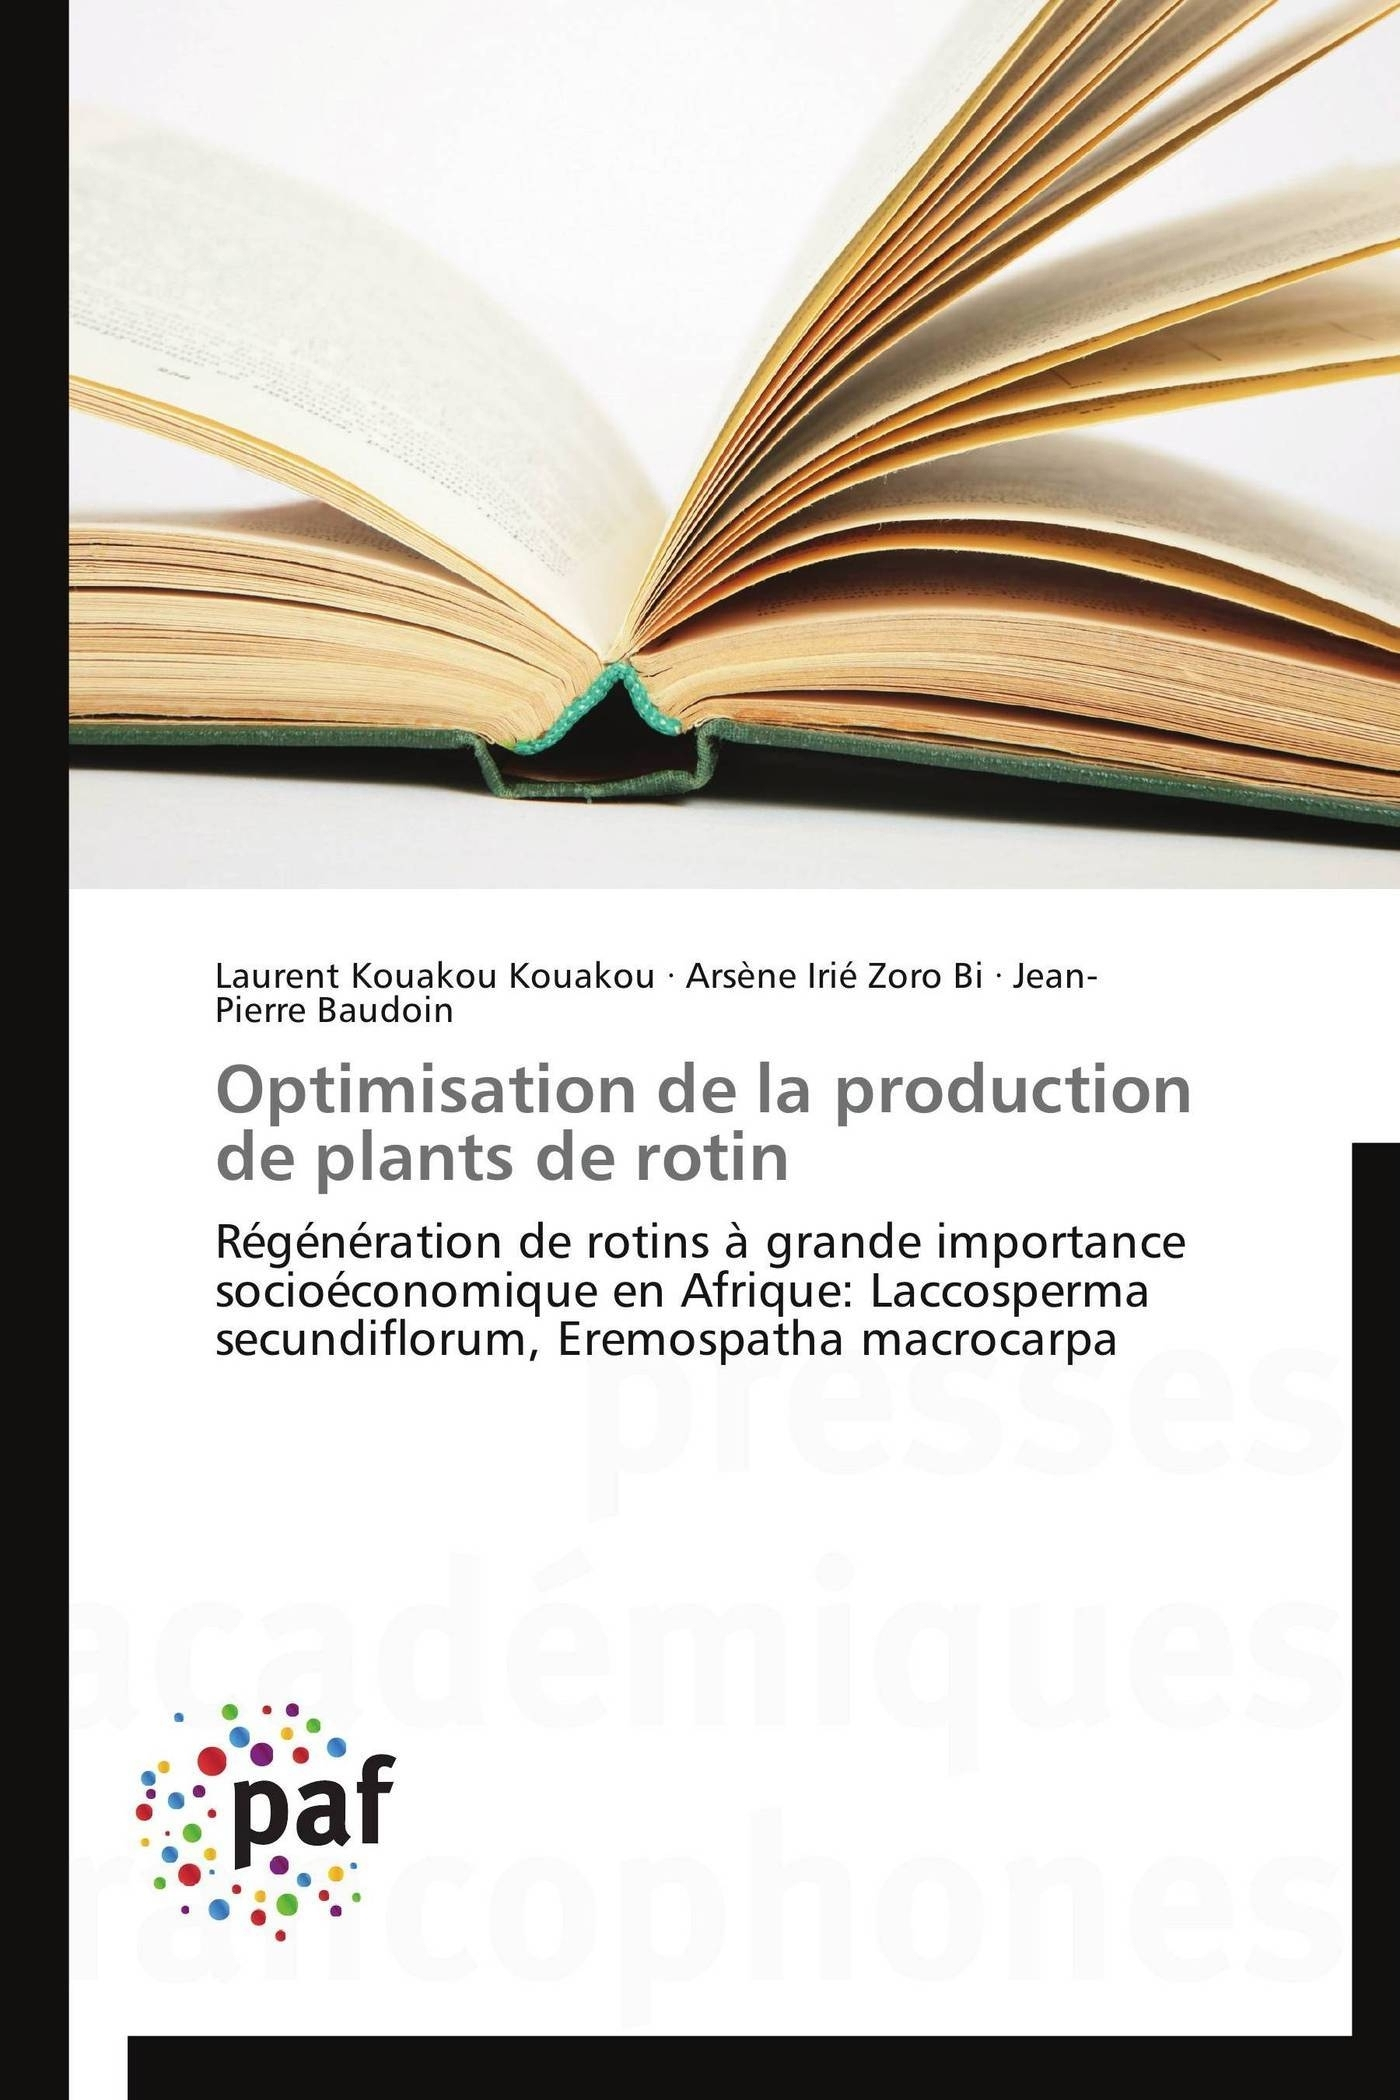 OPTIMISATION DE LA PRODUCTION DE PLANTS DE ROTIN